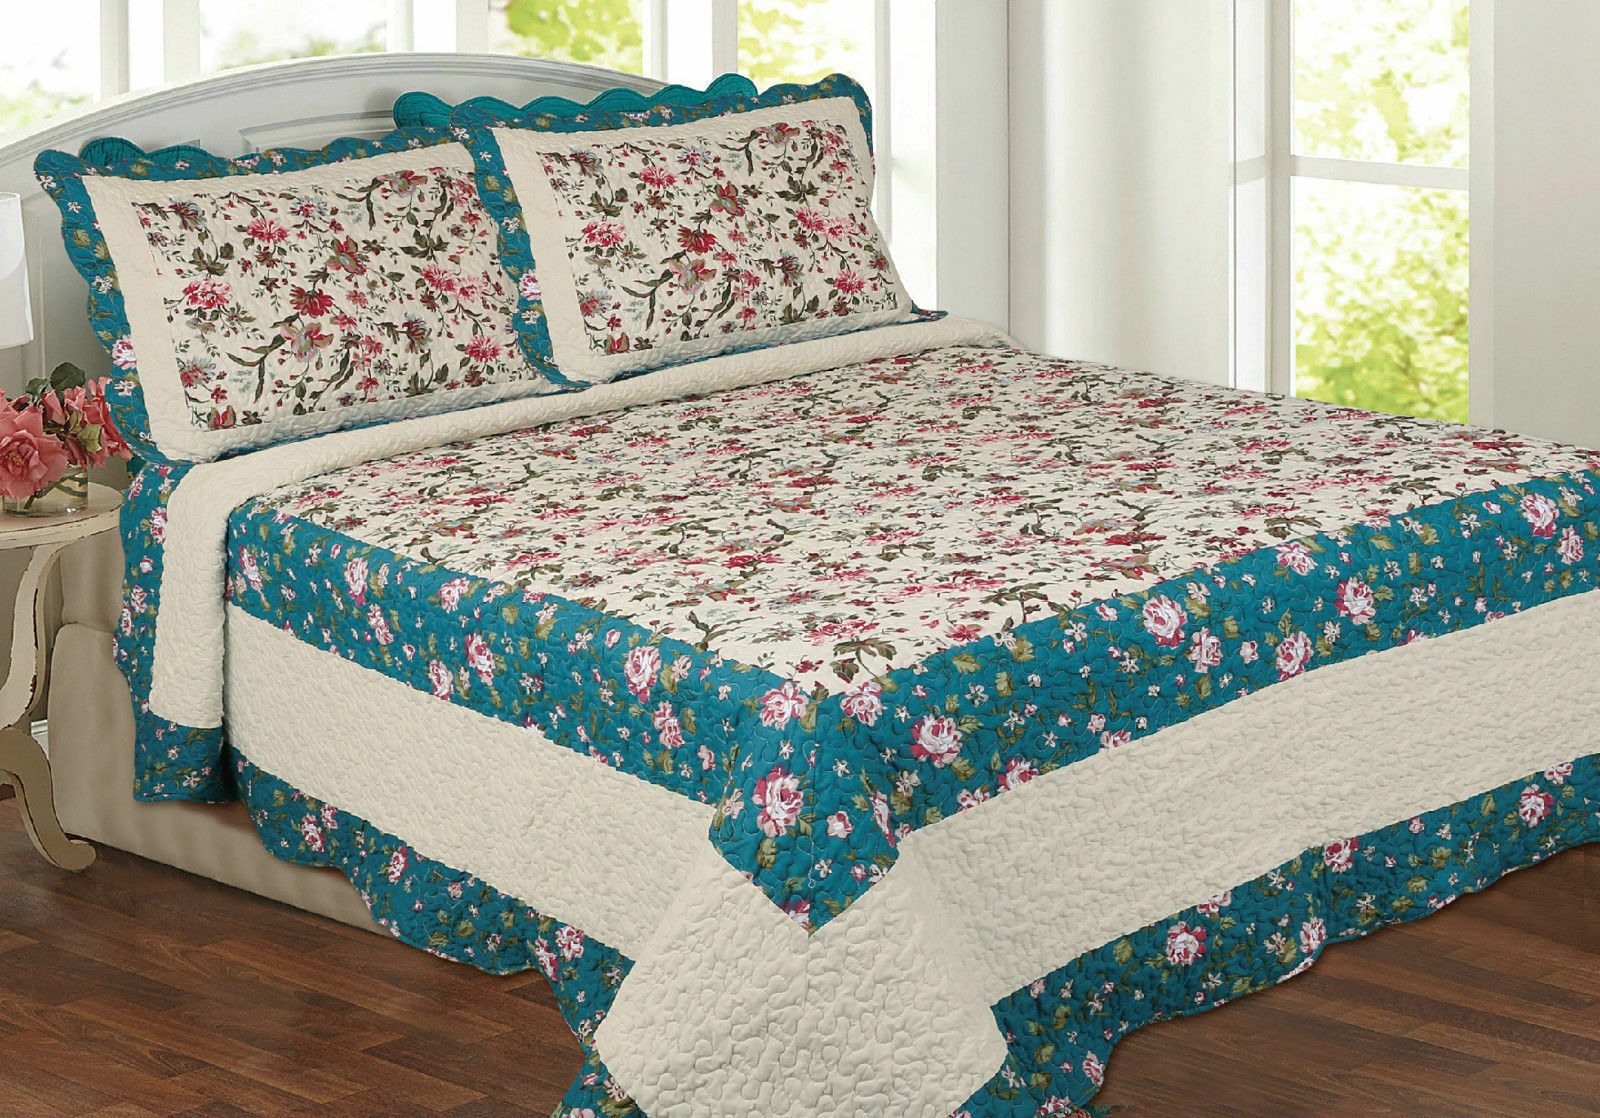 New  Cream Teal Blau Floral Country Cottage Beautiful Quilted Bedspread Throw